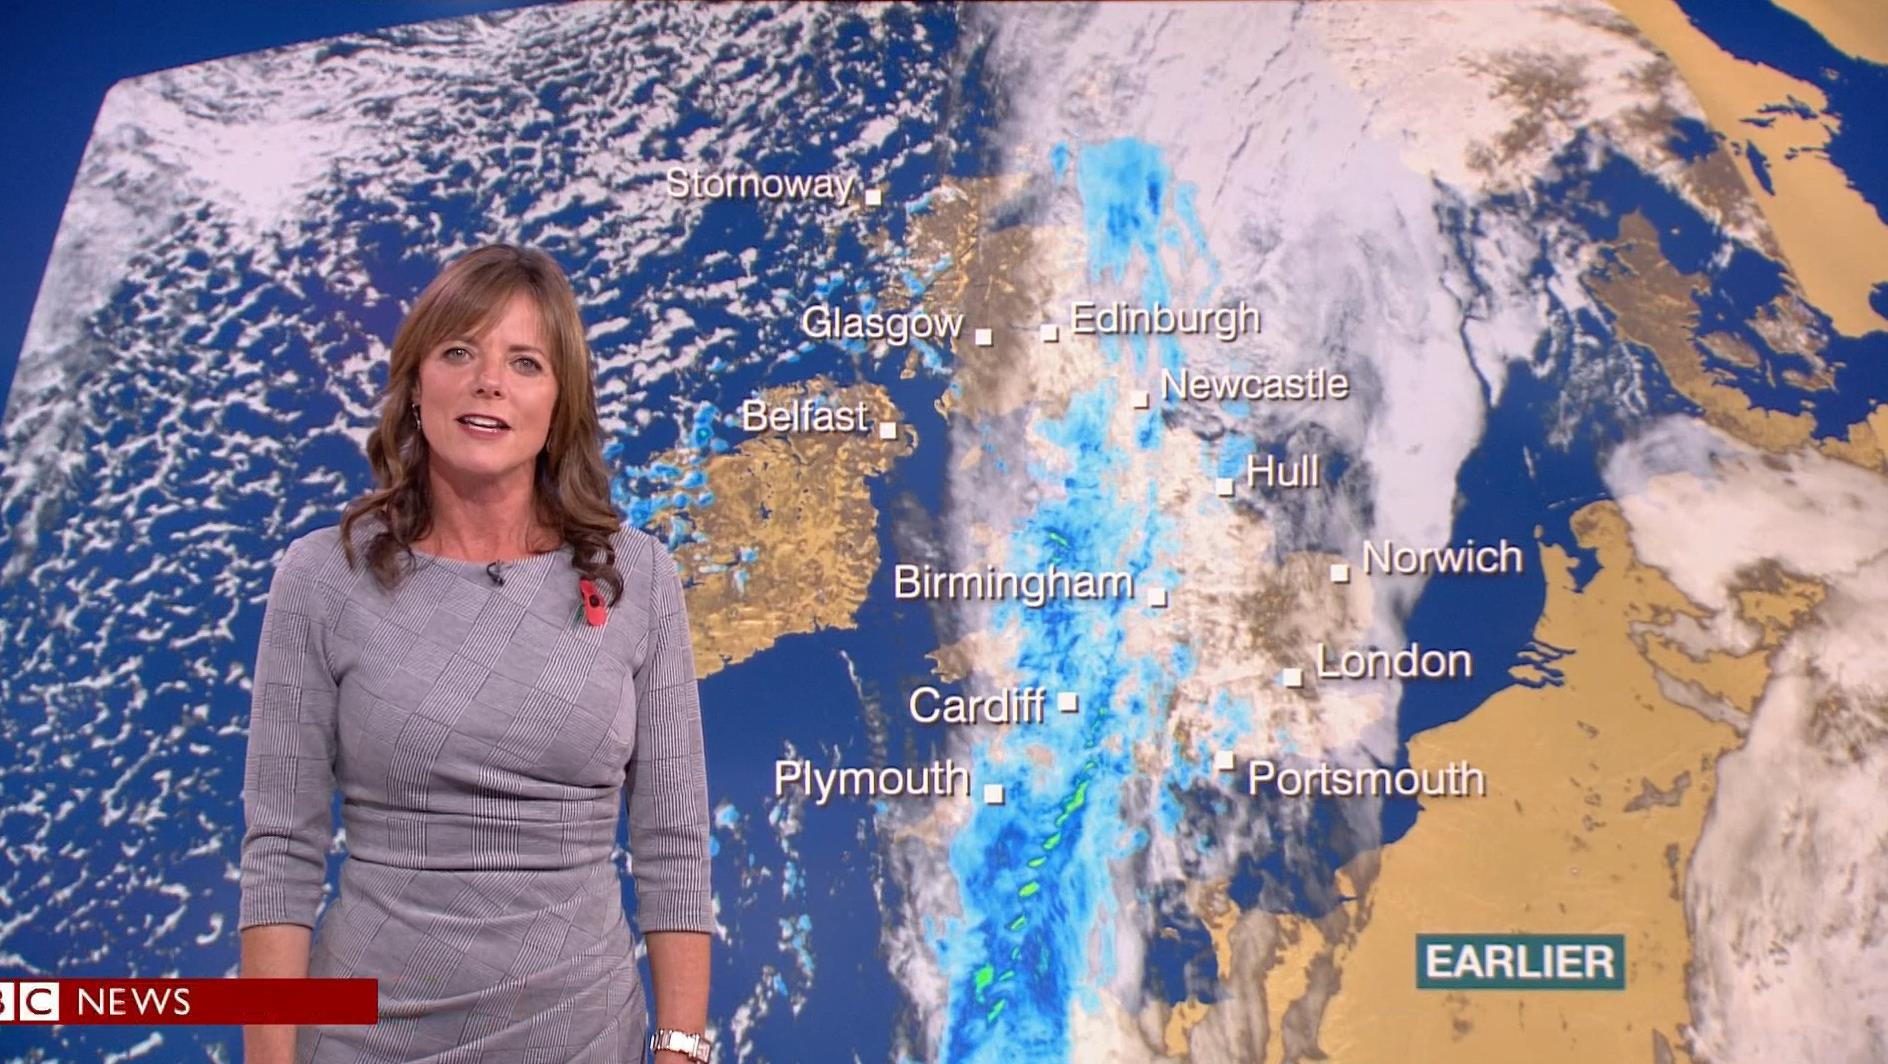 Q A With Tv Presenter Channel 5 Weather Girl And Children – Fondos